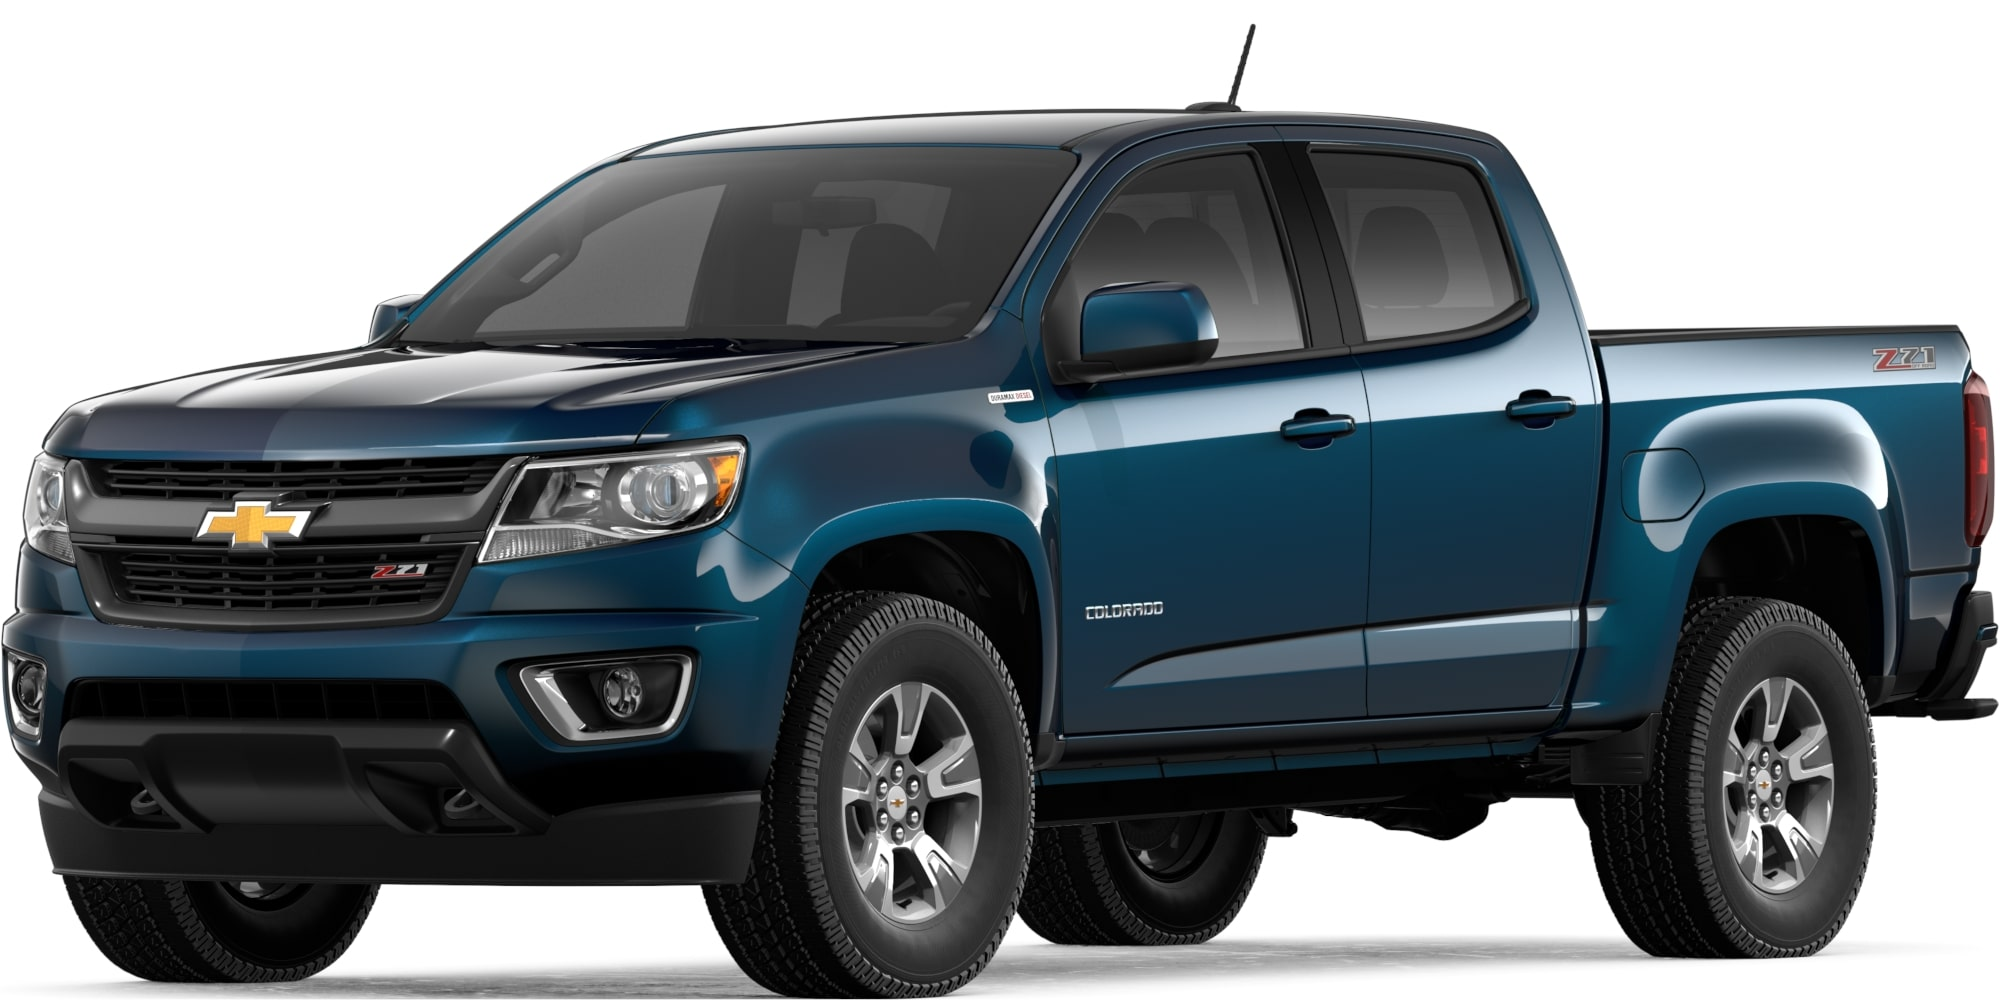 2019 Chevrolet Colorado Sacramento